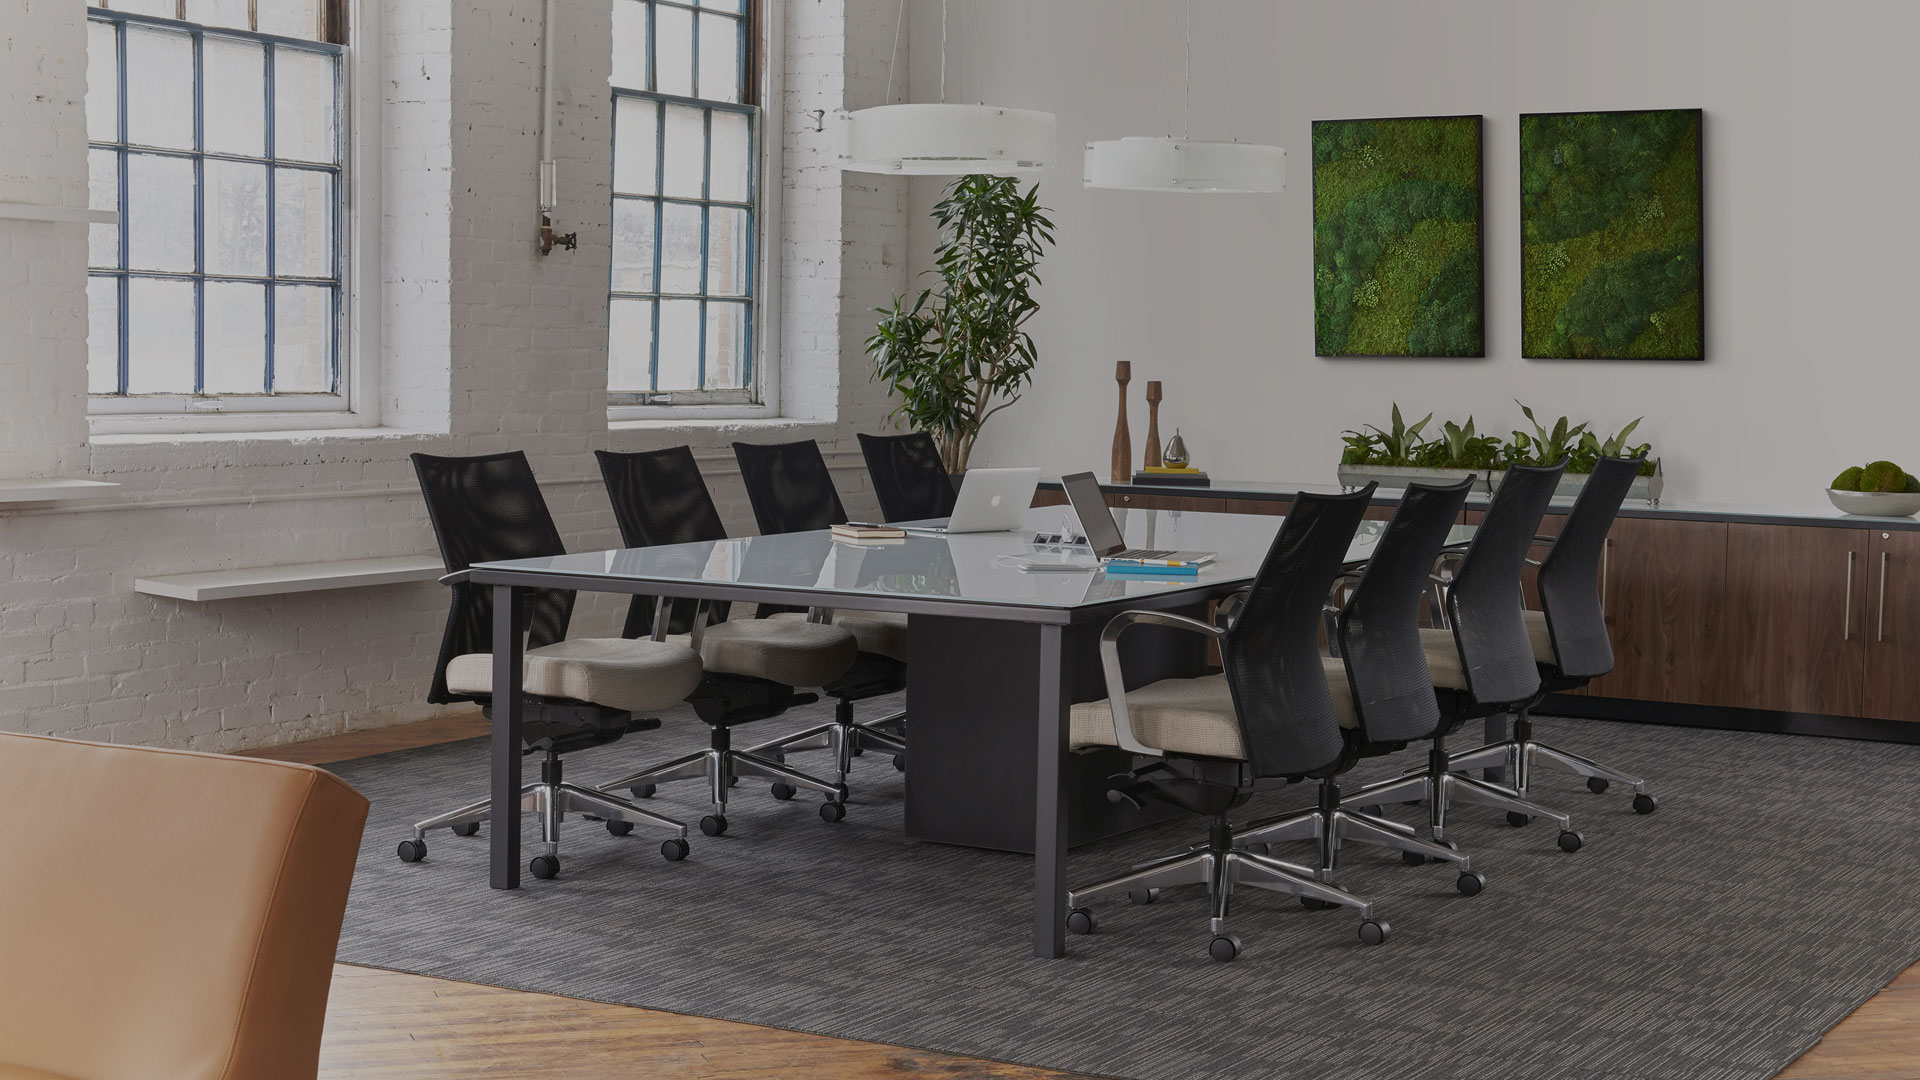 Trendway Intrinsic Conference Table with Sketch Seating